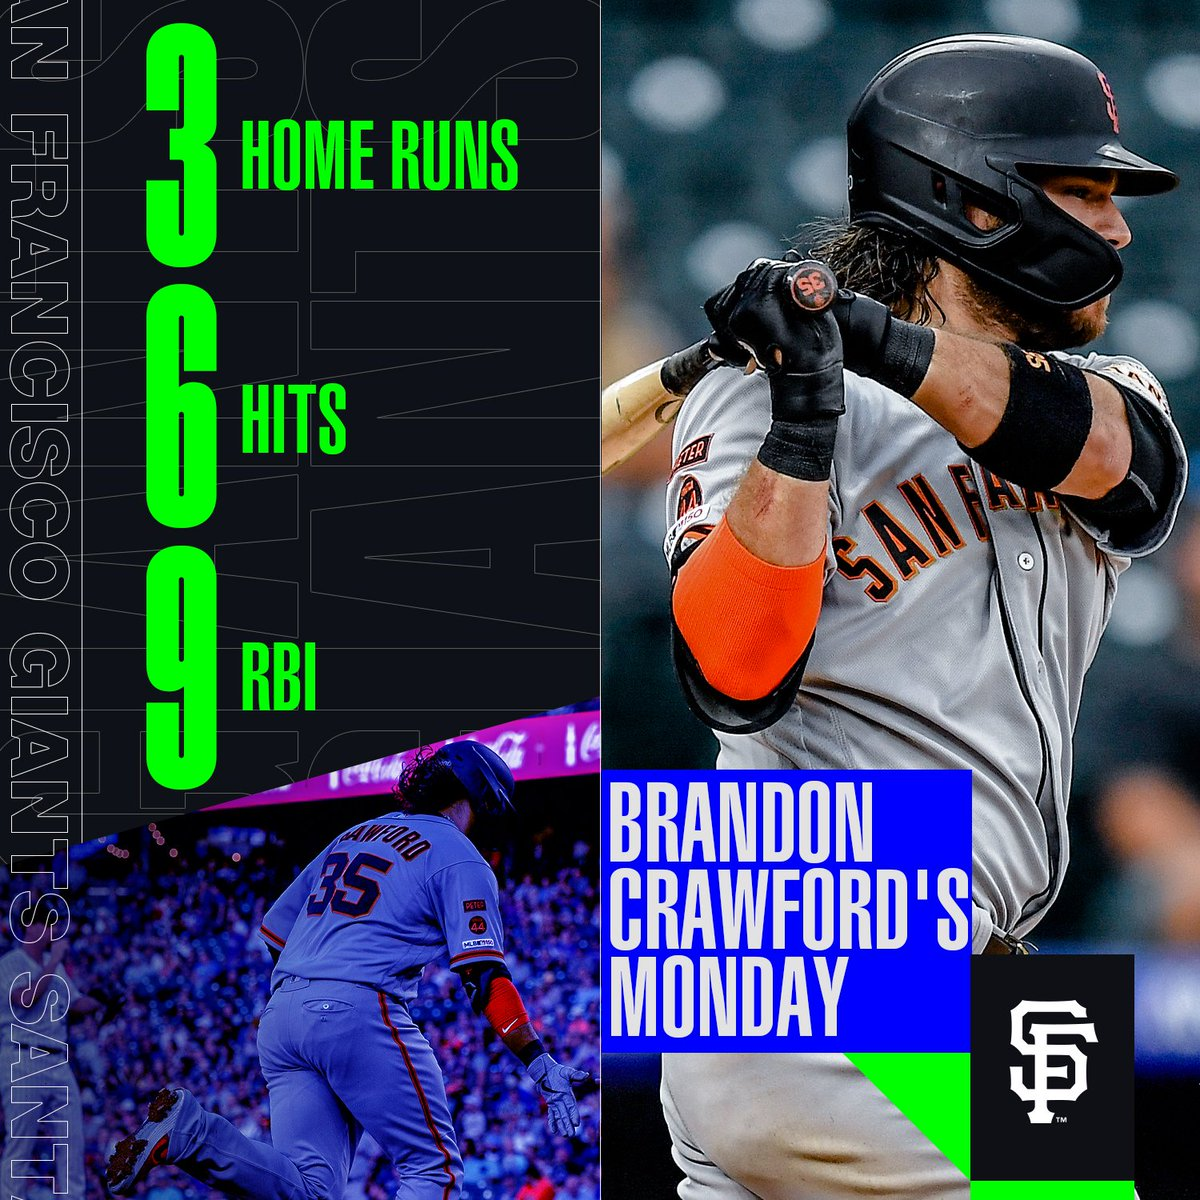 RT @MLBStats: .@bcraw35's Monday was better than your Monday. https://t.co/t96uHqjtPm